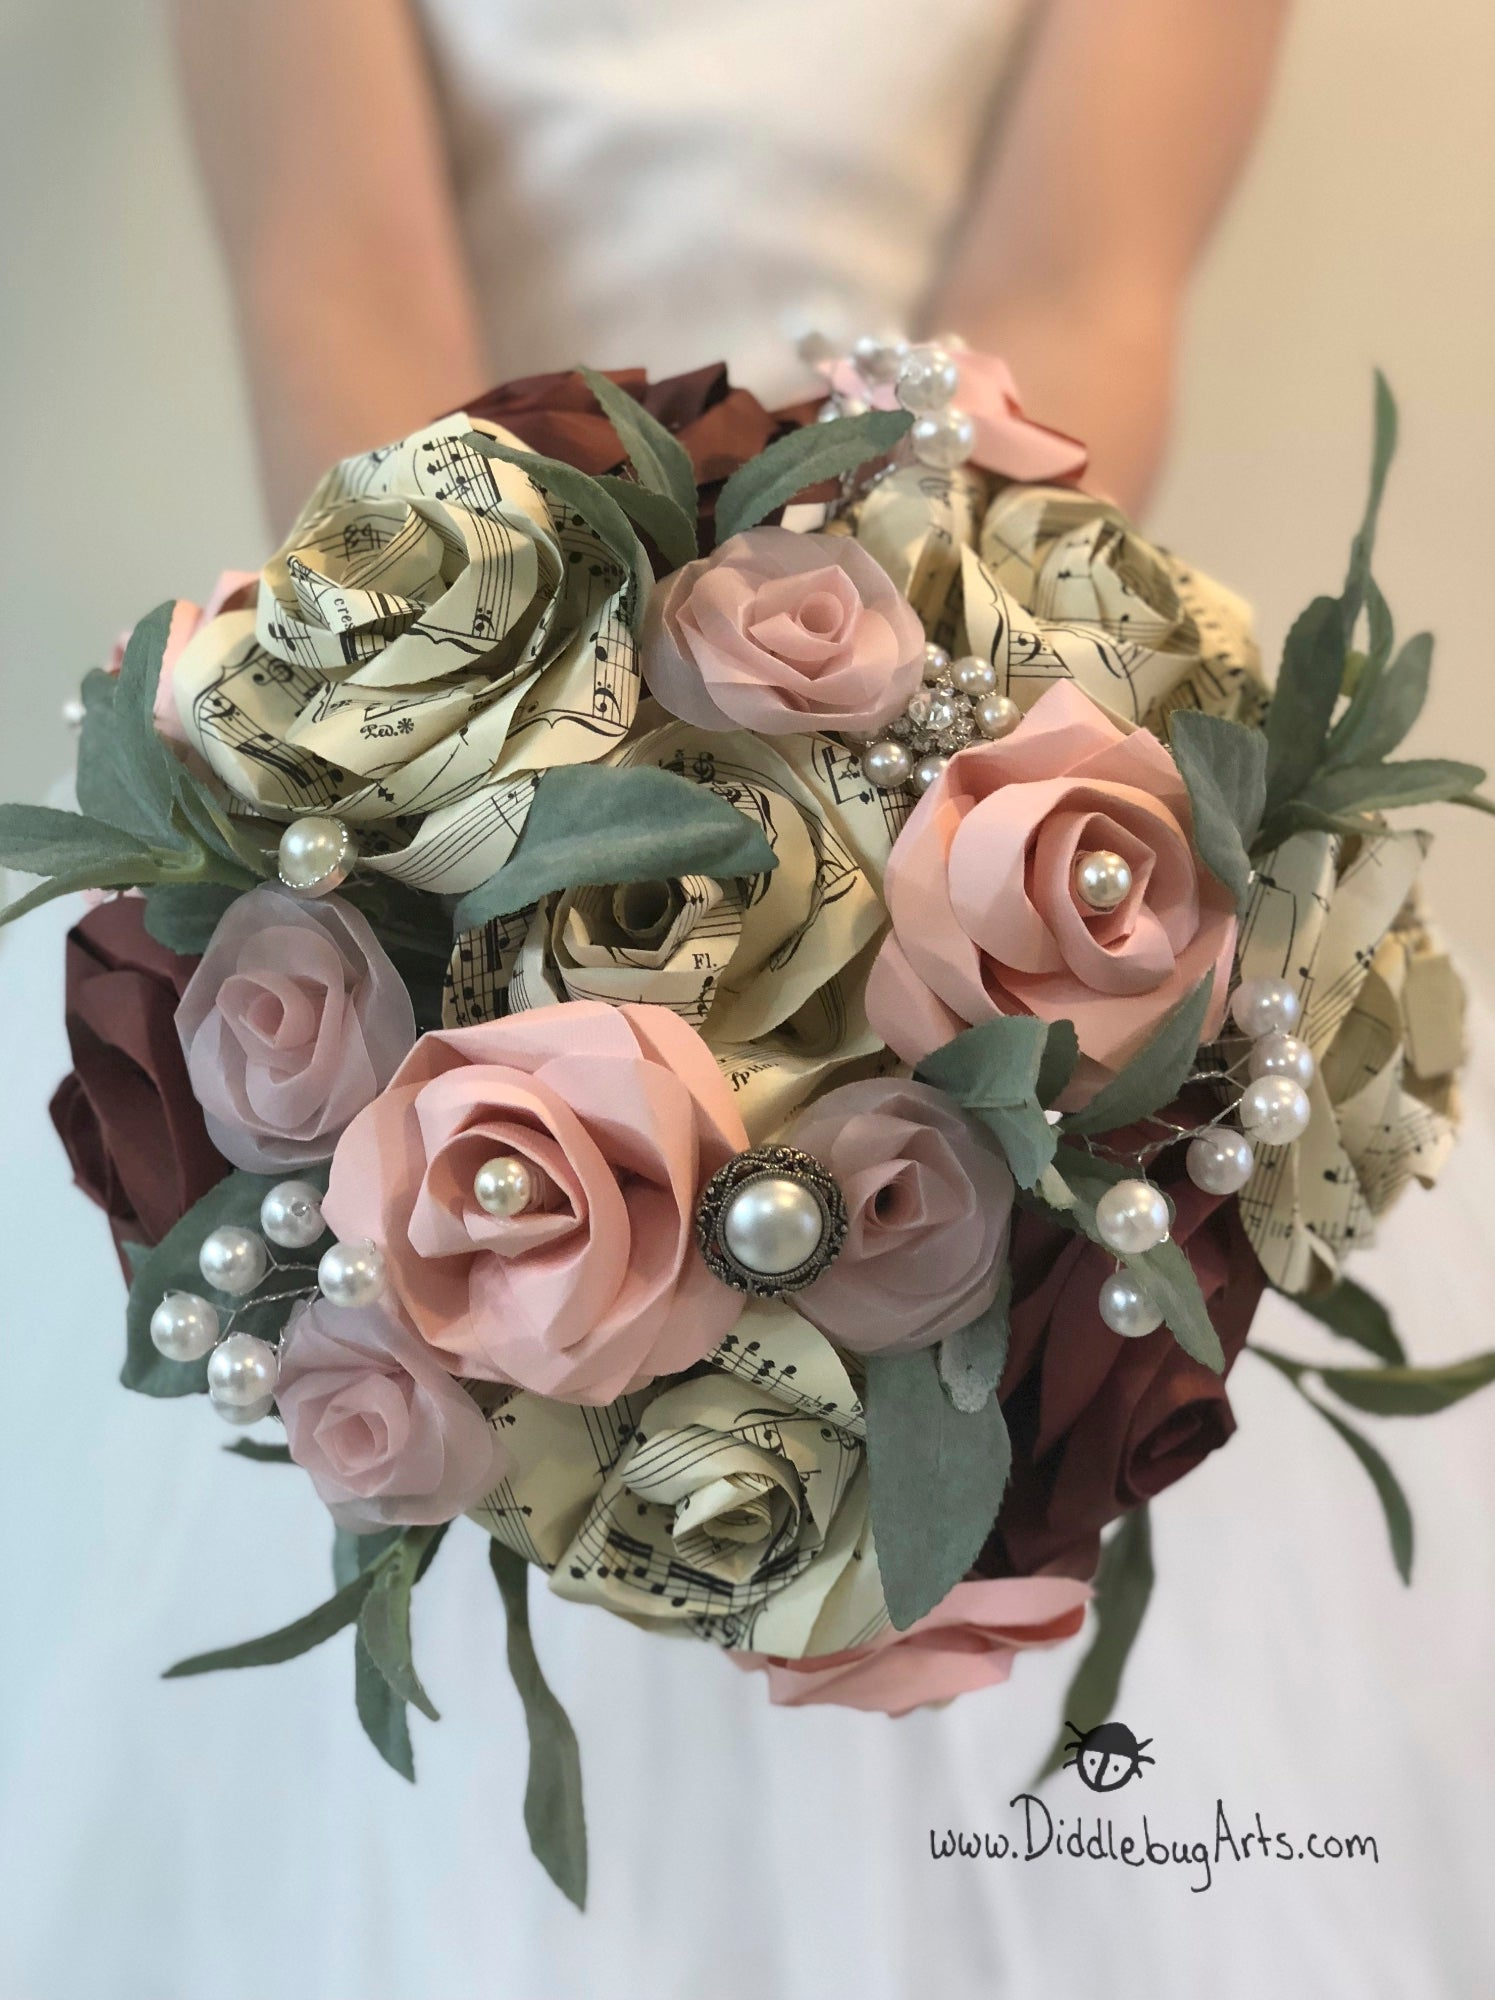 Paper bridal bouquet with book page or sheet music roses, pearls and silk greenery